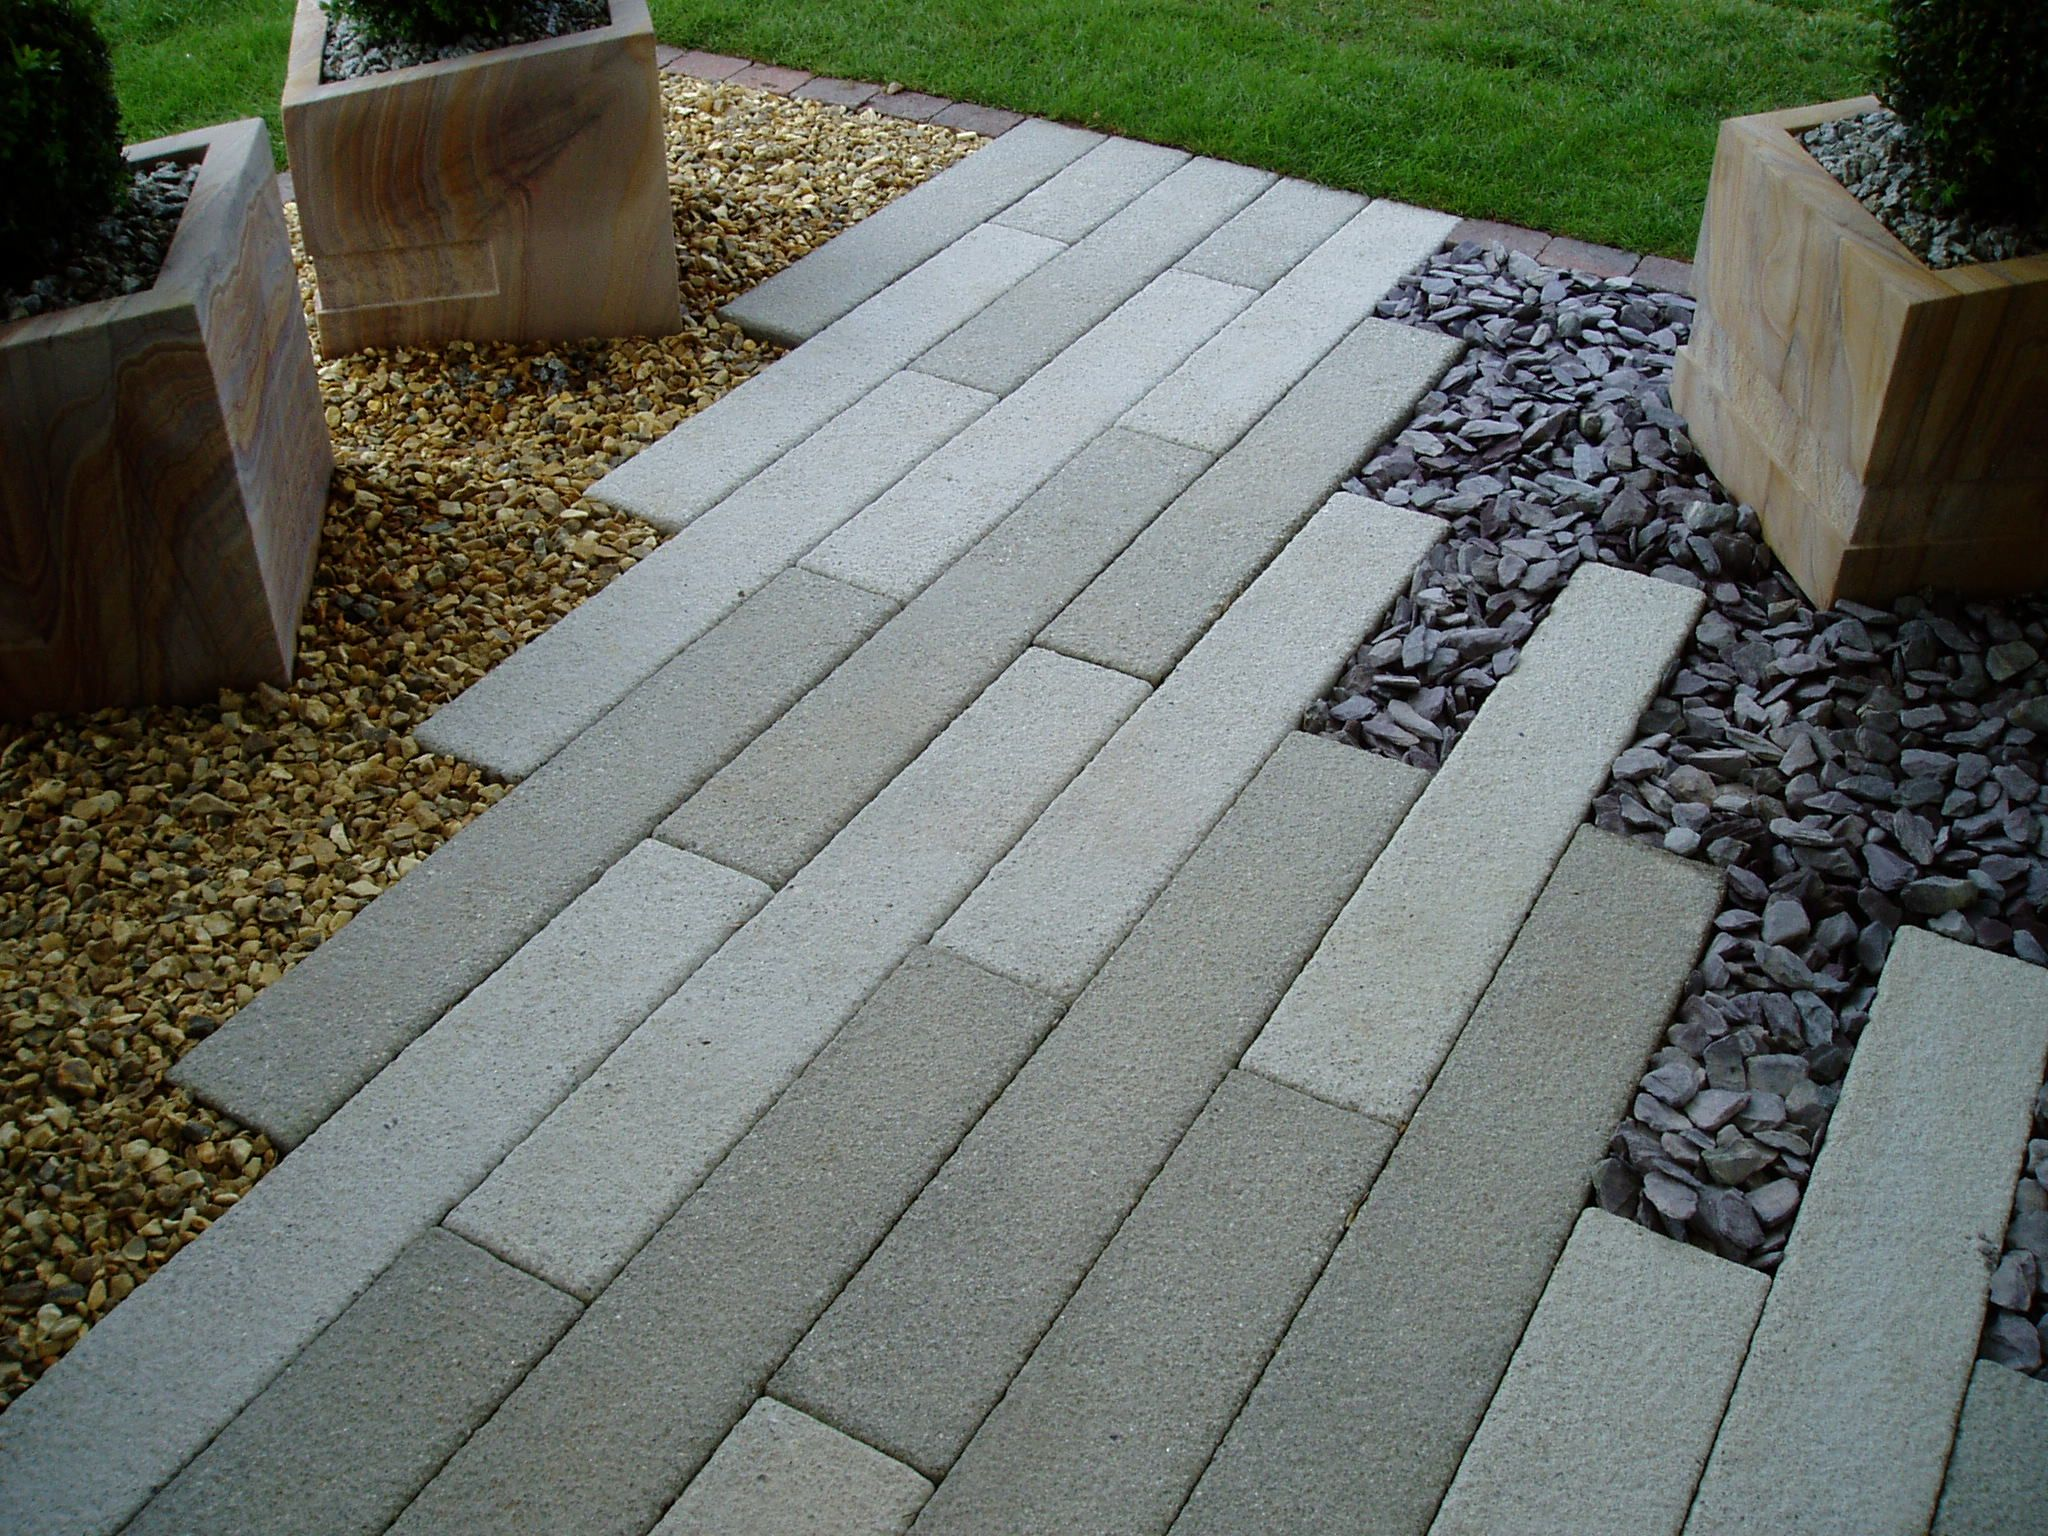 Elegant Paver Stones With Cedar Bark On One Side And River Rock On The Other. You  Could Also Do White River Rock On One Side And Dark Gray Rock On The Other.